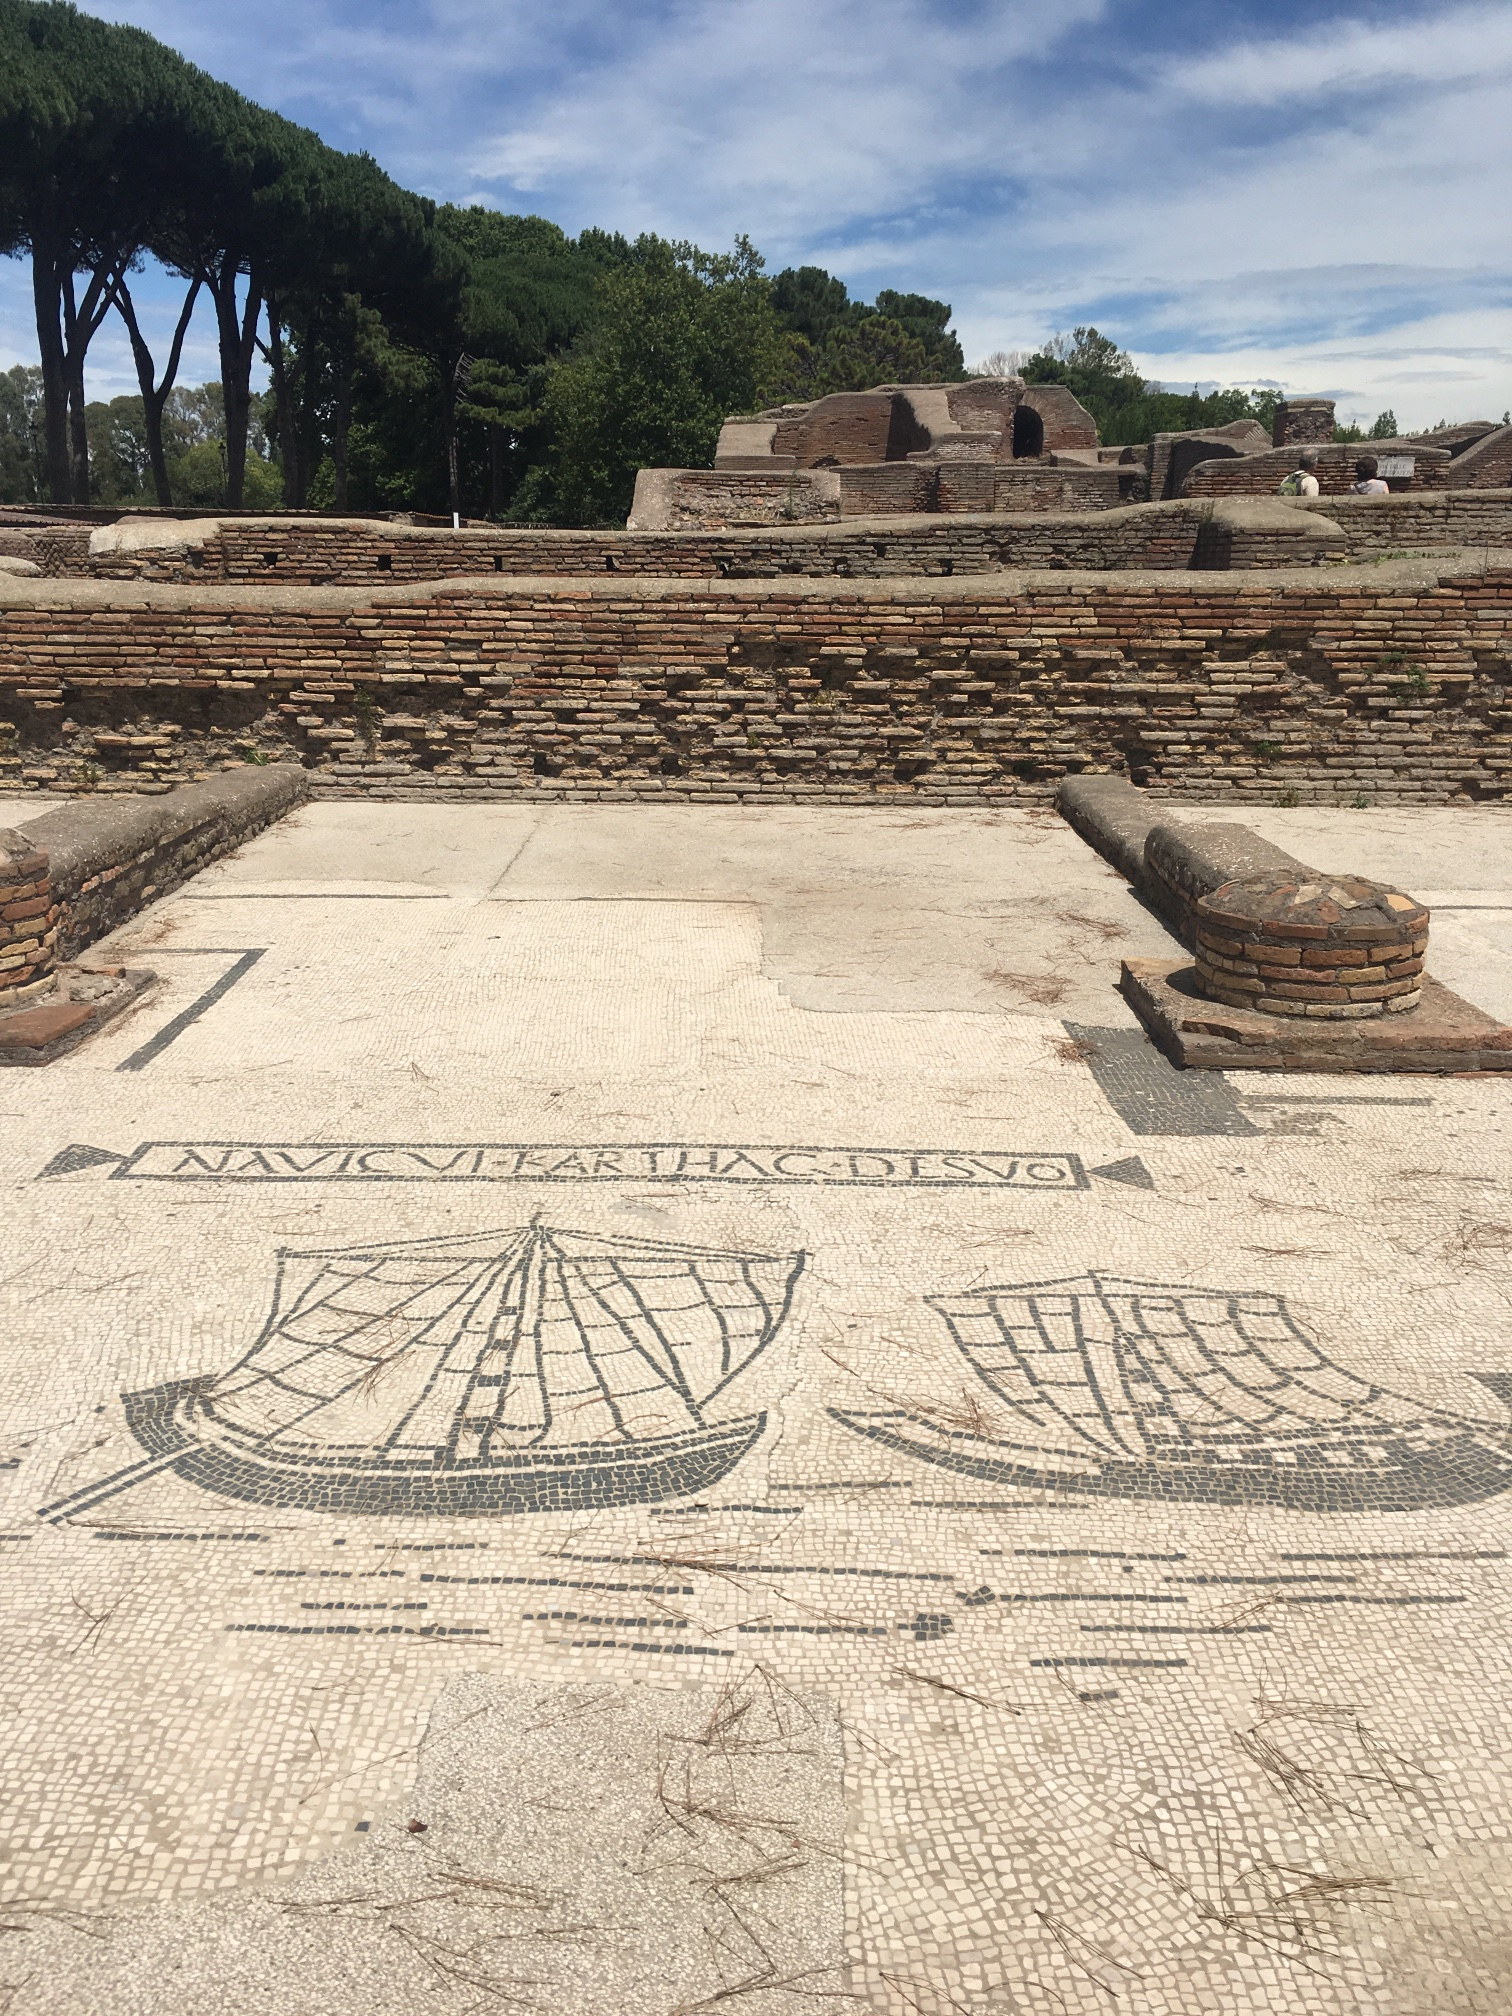 The main square of the town is surrounded by stalls, where the people of Ostia ran their businesses. Each stall had a fresco on the ground in front of it indicating what they did. This was a sailing company.